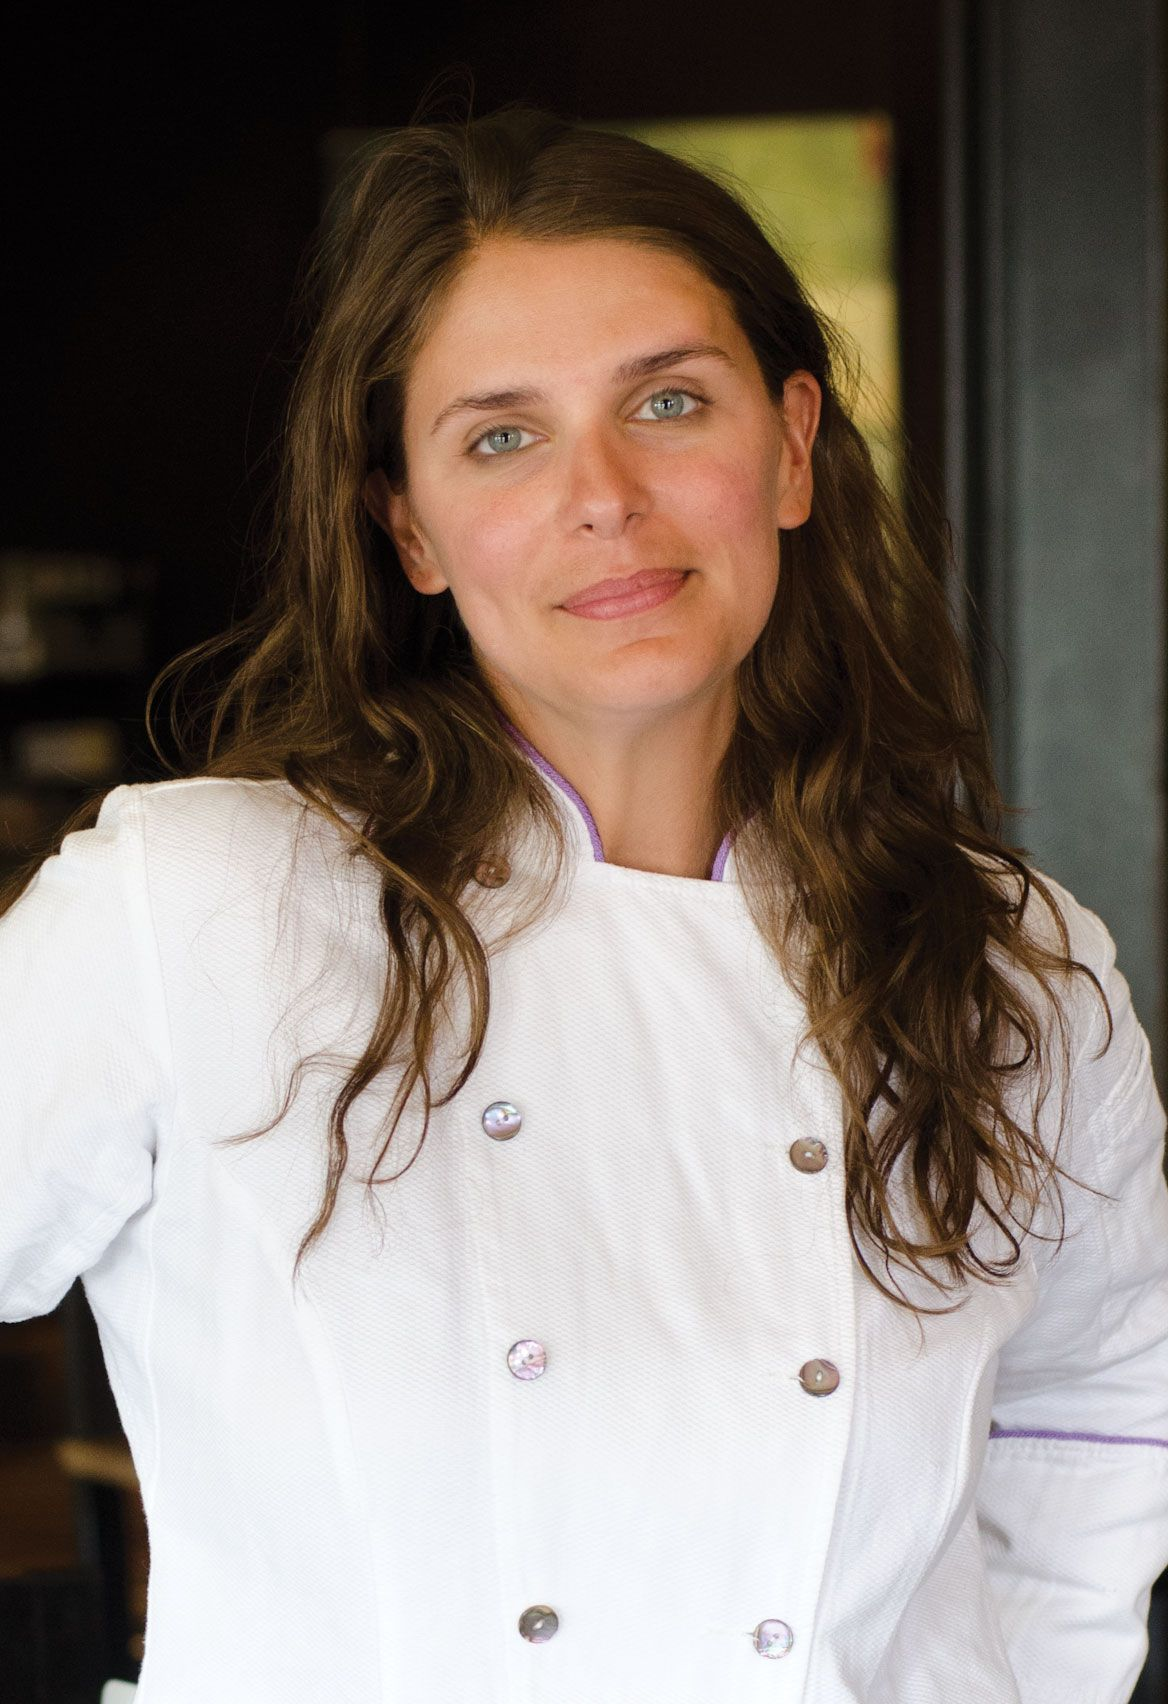 Vivian Howard. Her accent stirs me.....